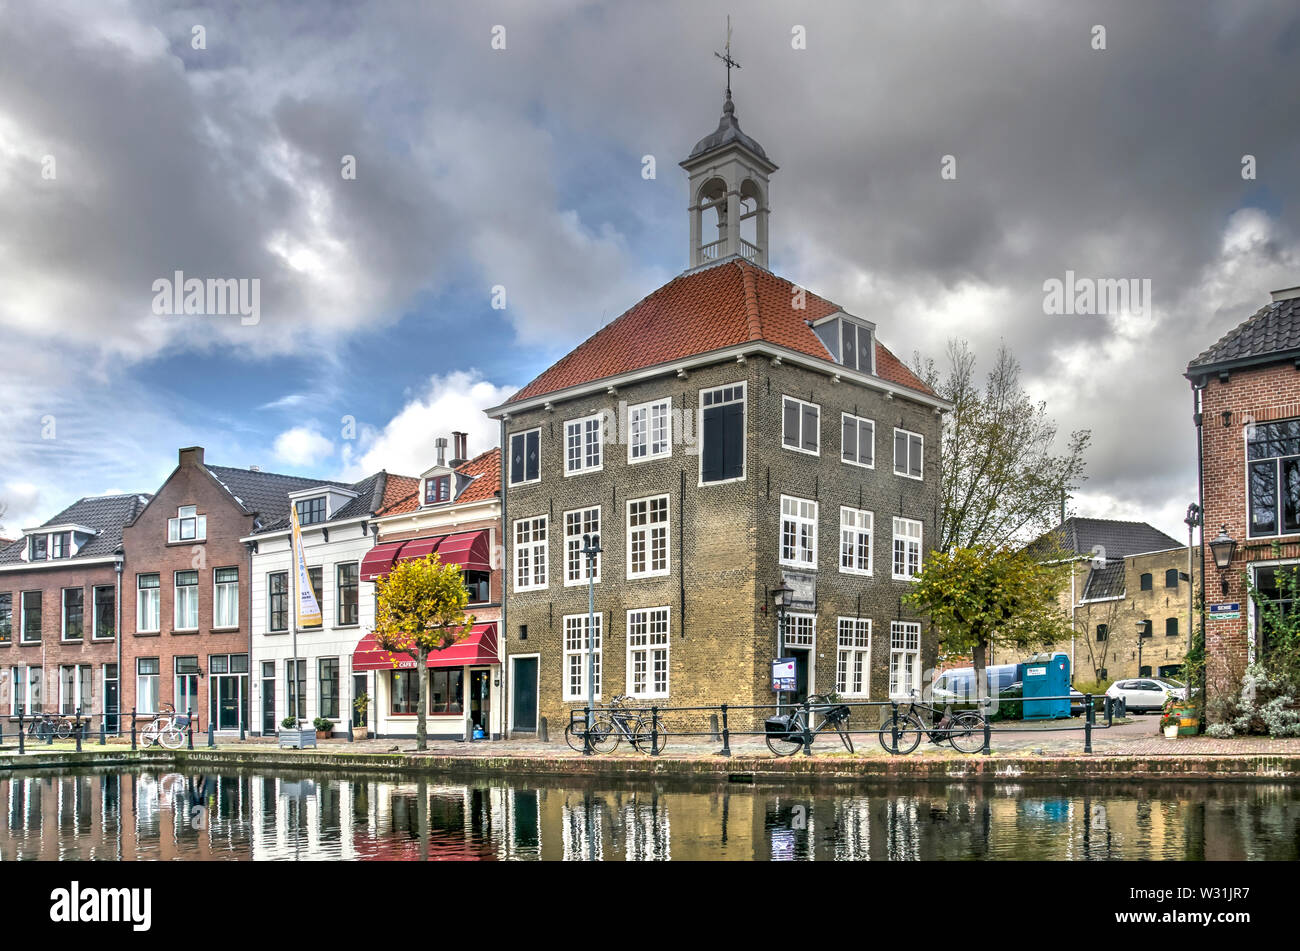 Schiedam, The Netherlands, November 11, 2017: the historic canal house of the guild of the bag carriers in the old center of town Stock Photo